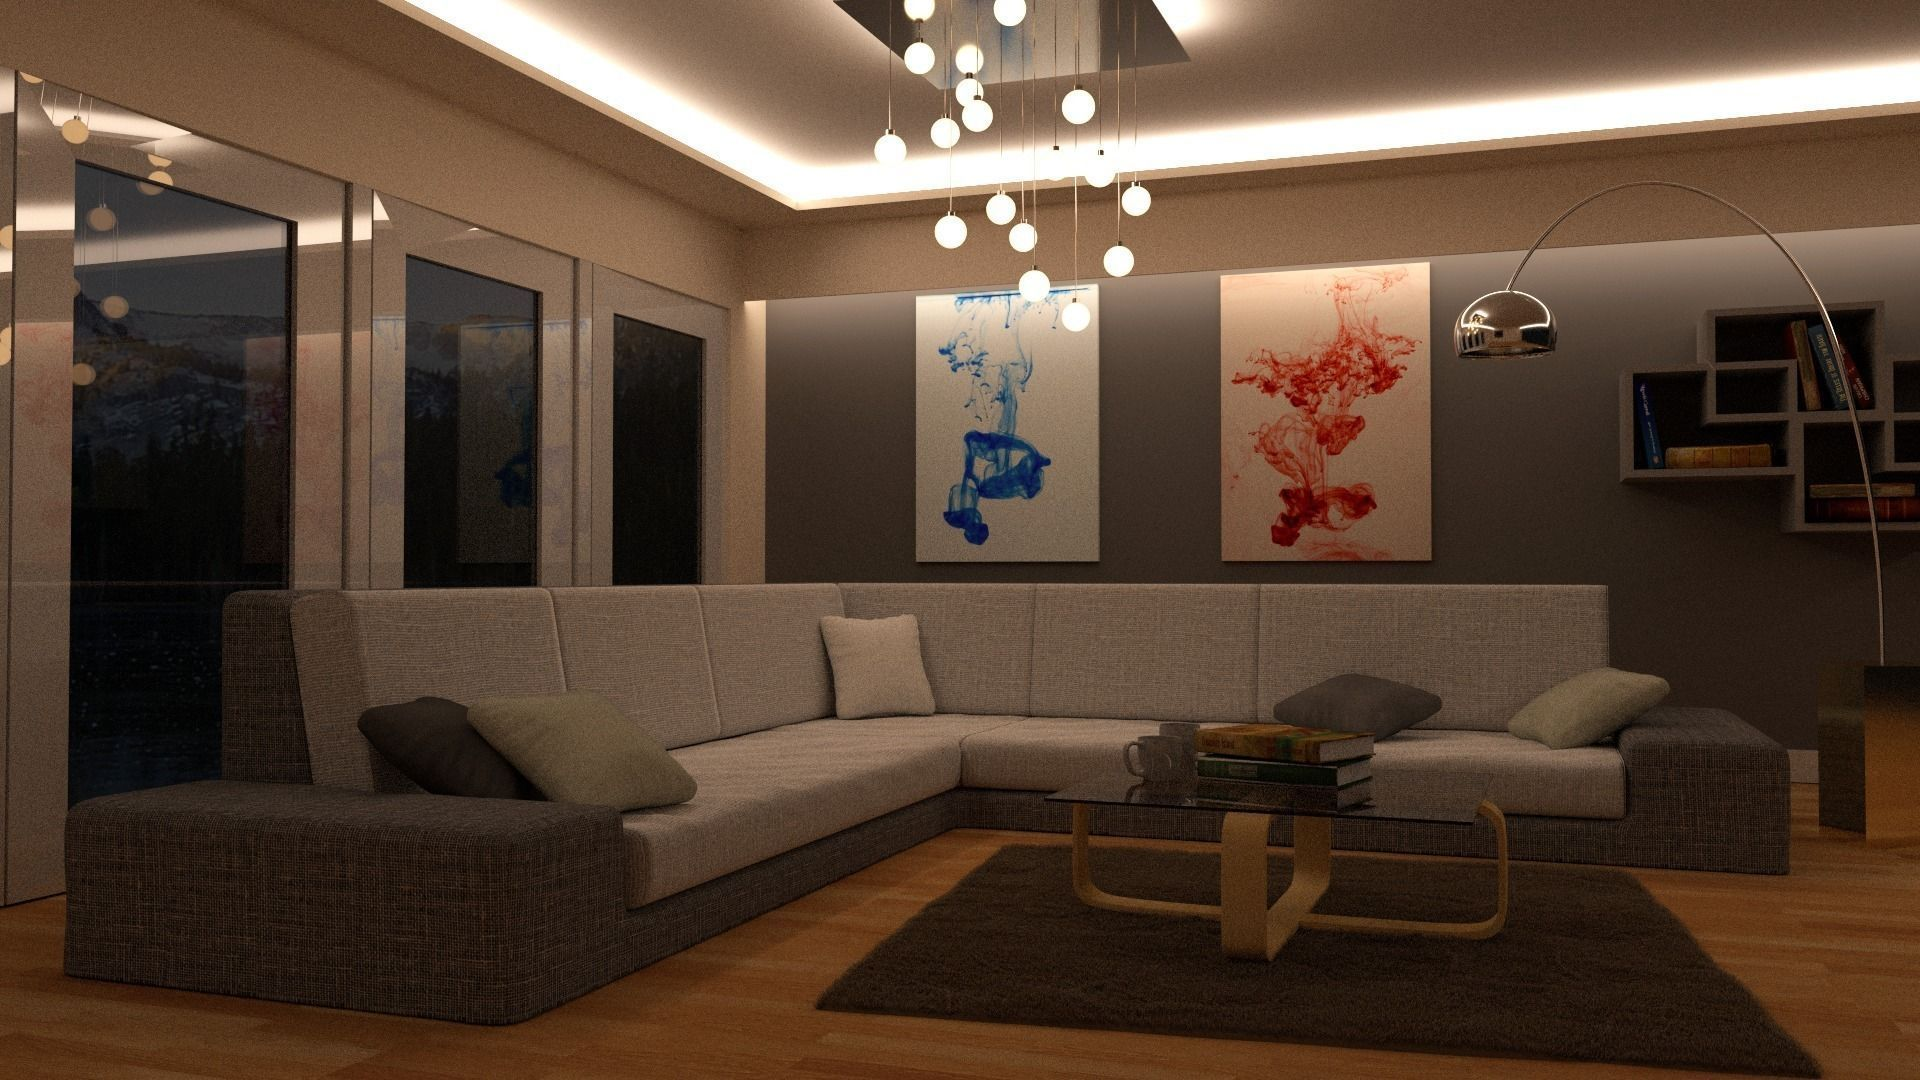 ... Lounge Room Day And Night Scene Blender Models 3d Model Blend 2 Photo Gallery